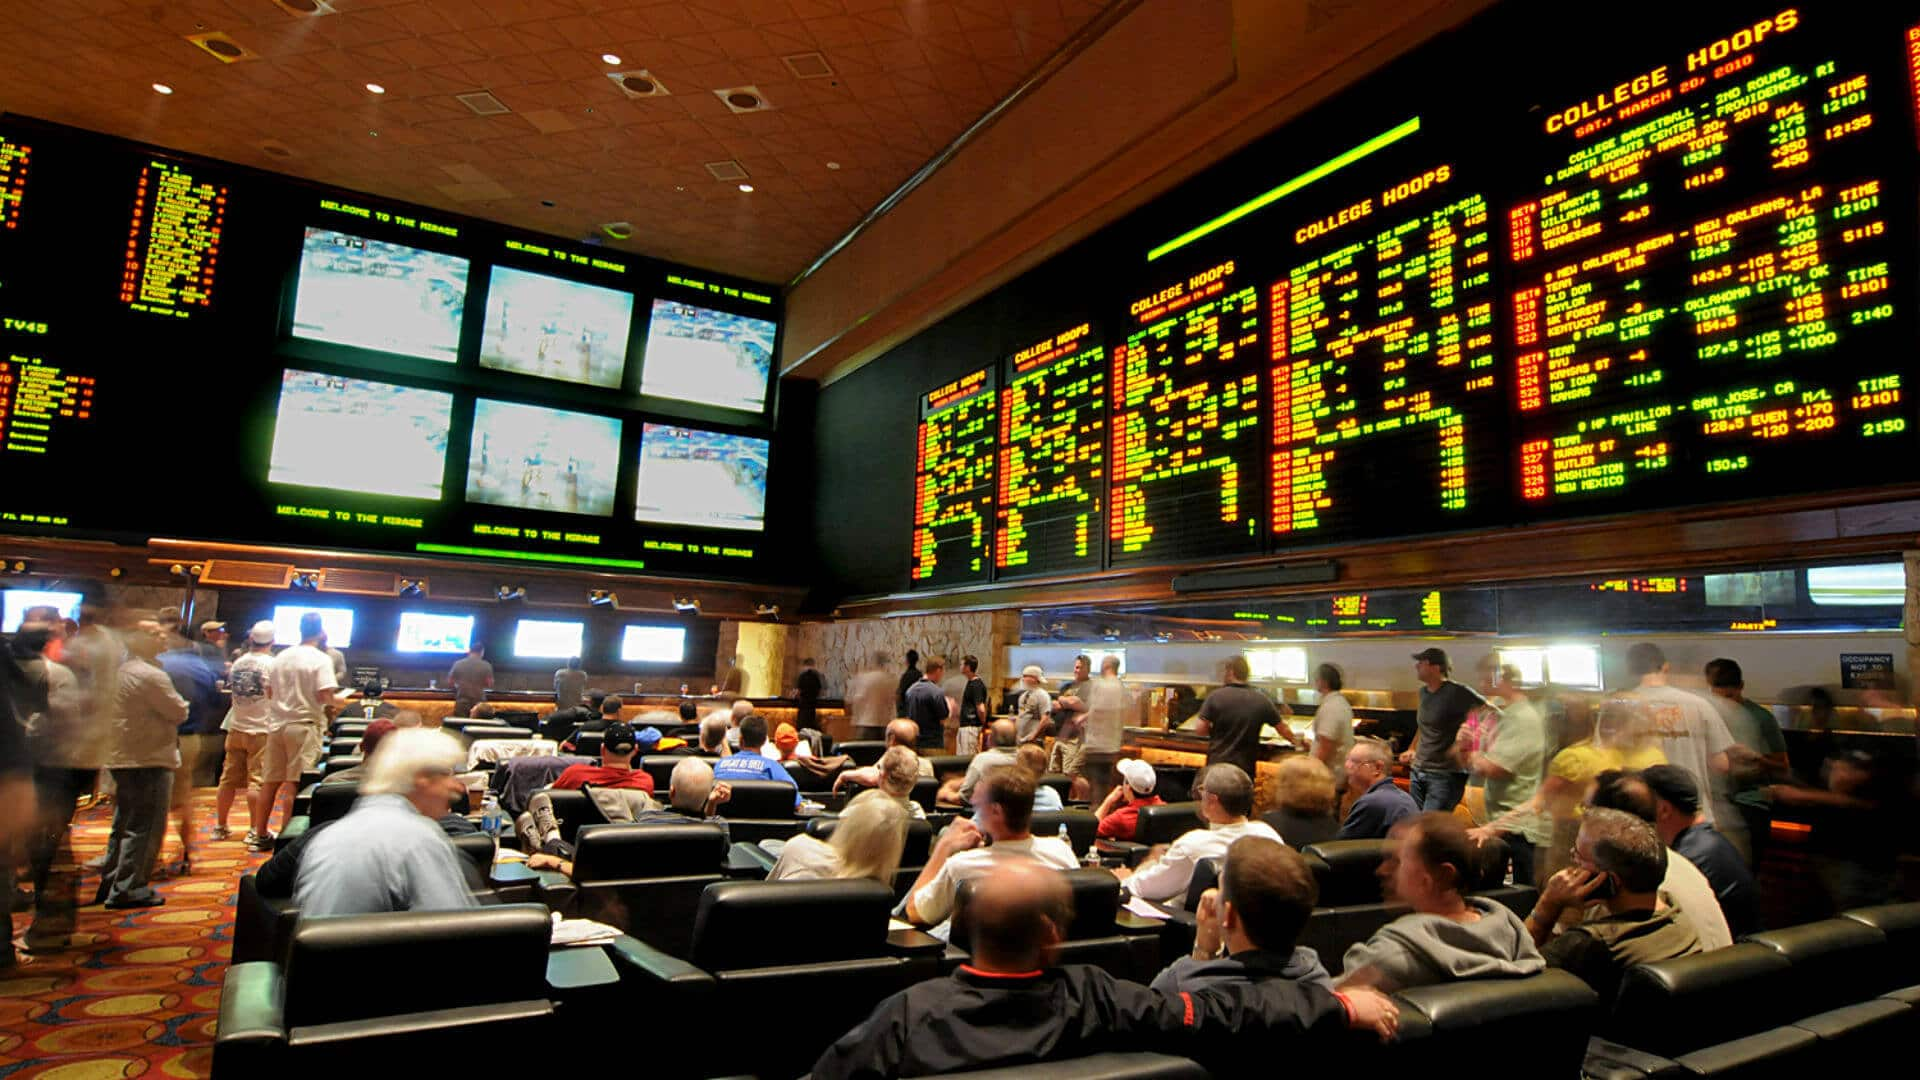 on line horse betting horse basketball games